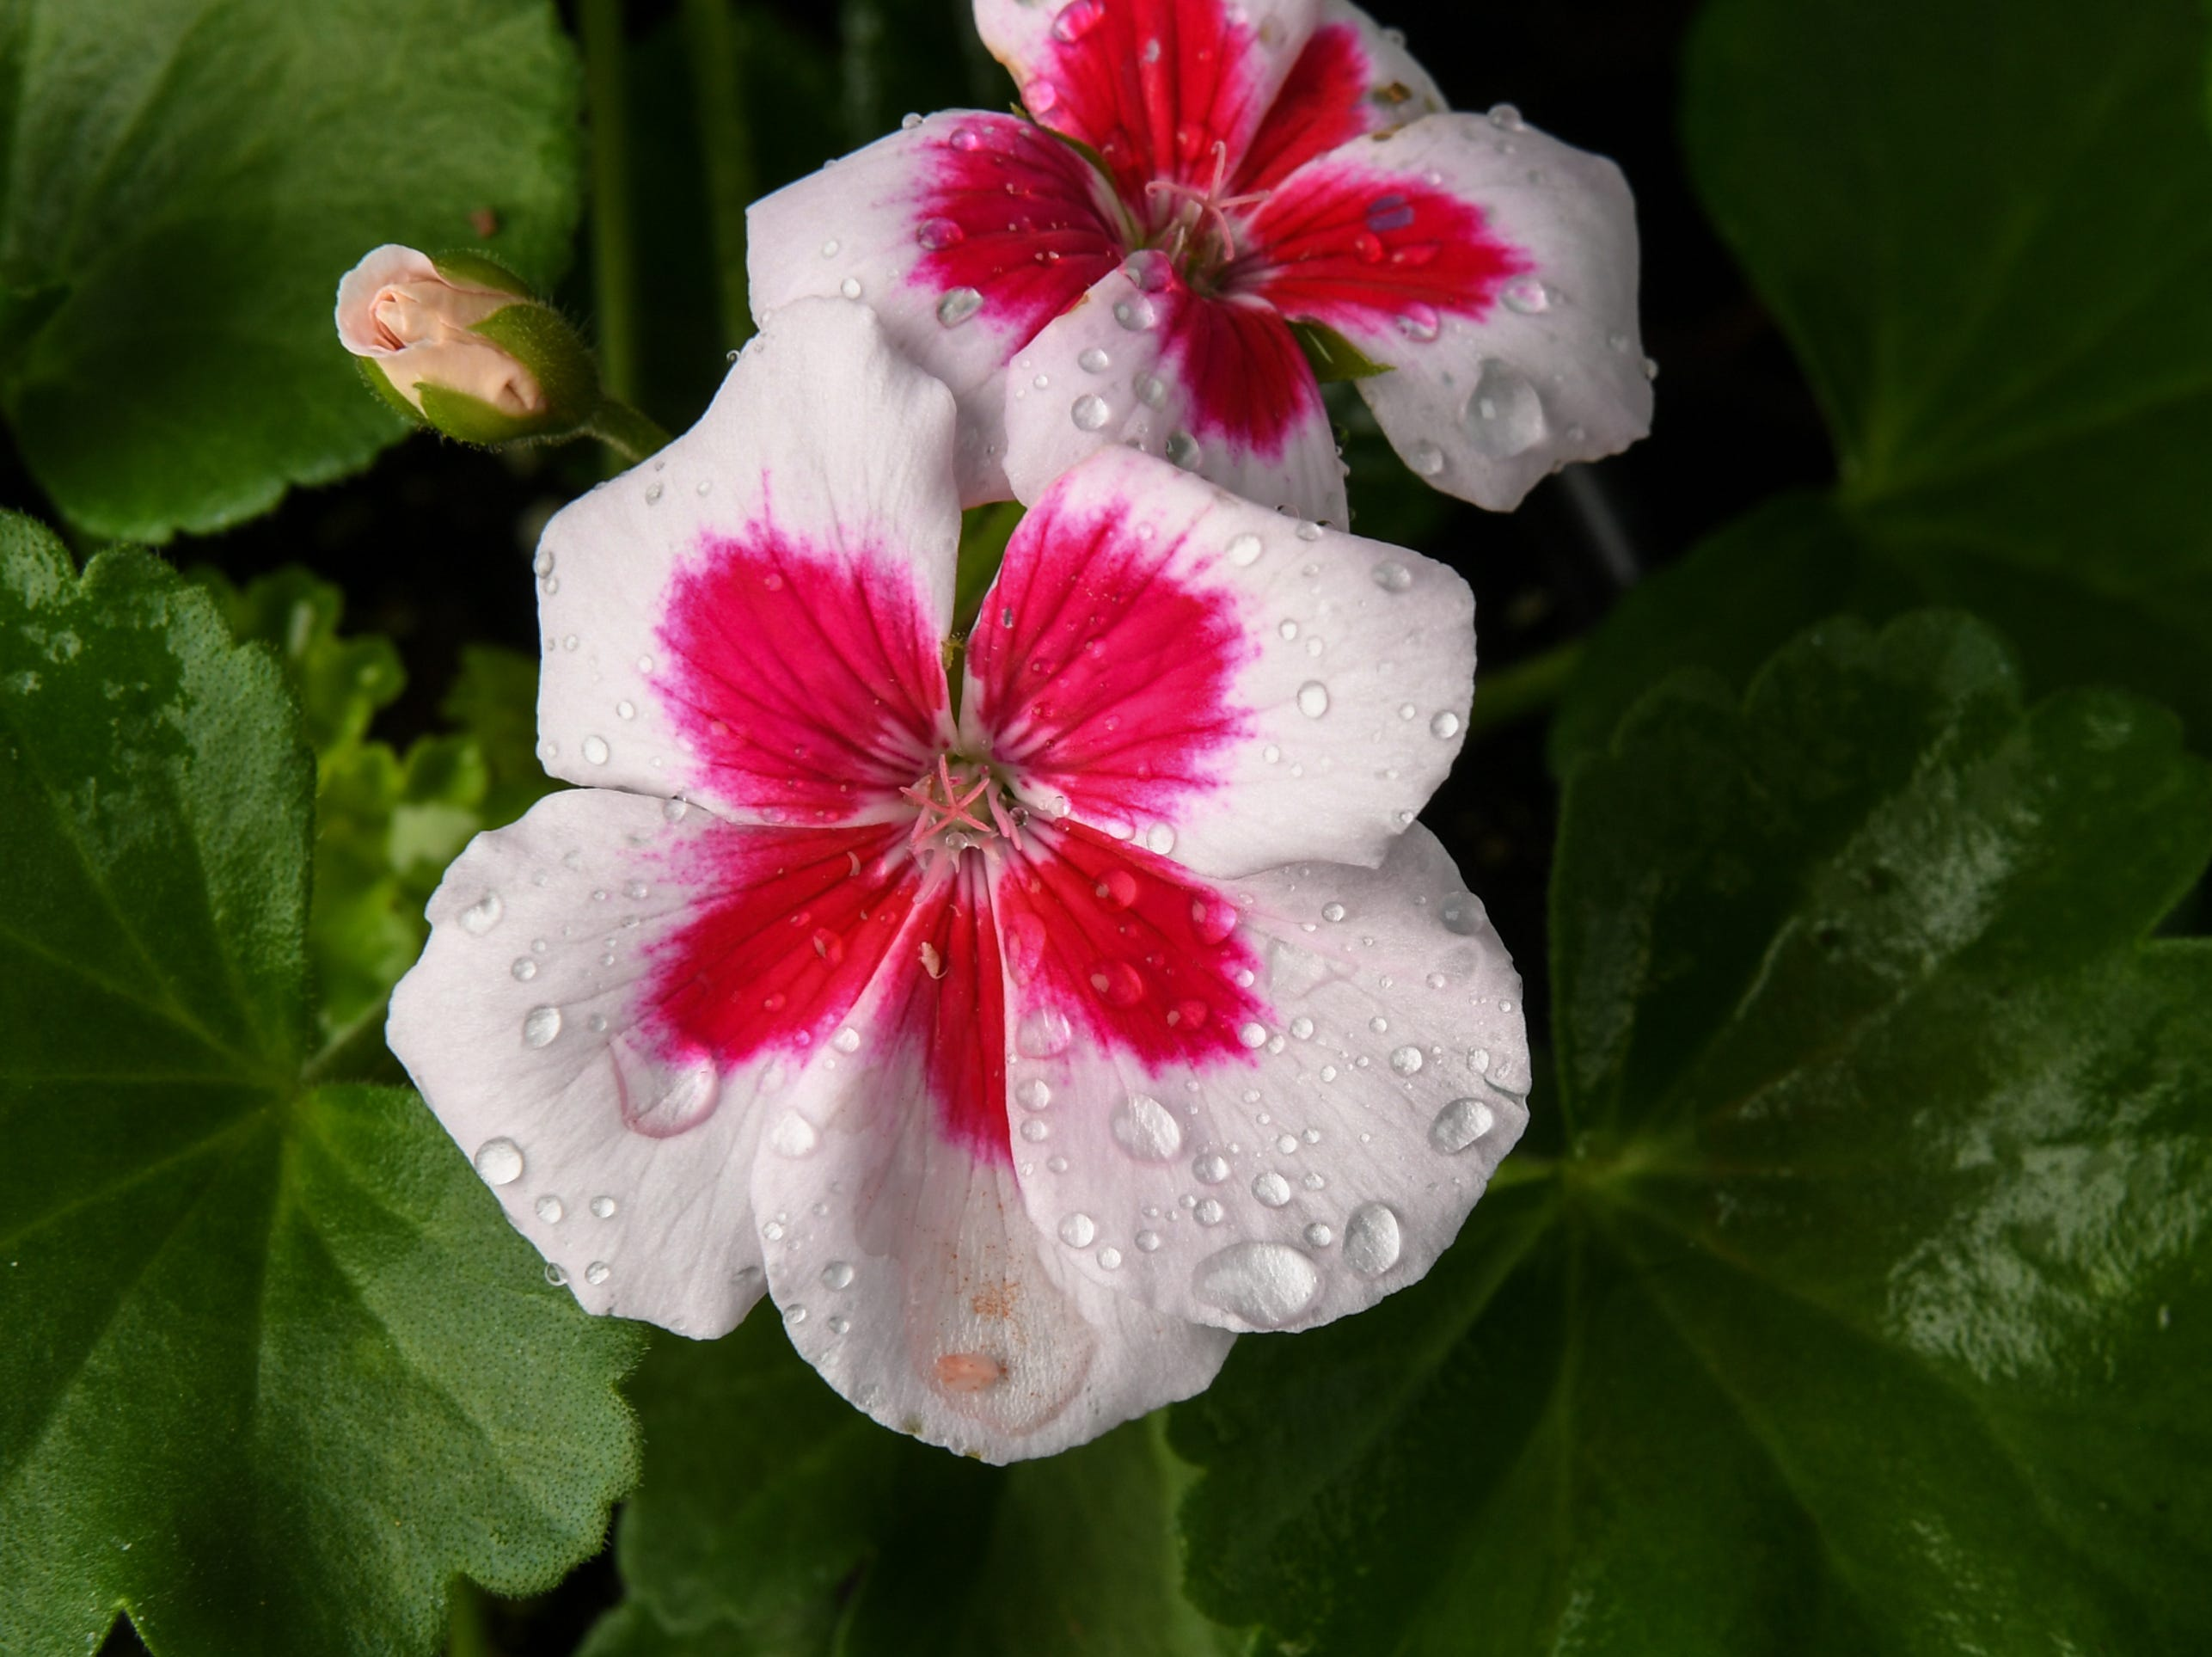 A flower of a geranium in bloom, one of many plants selling during spring months in Anderson Wednesday.